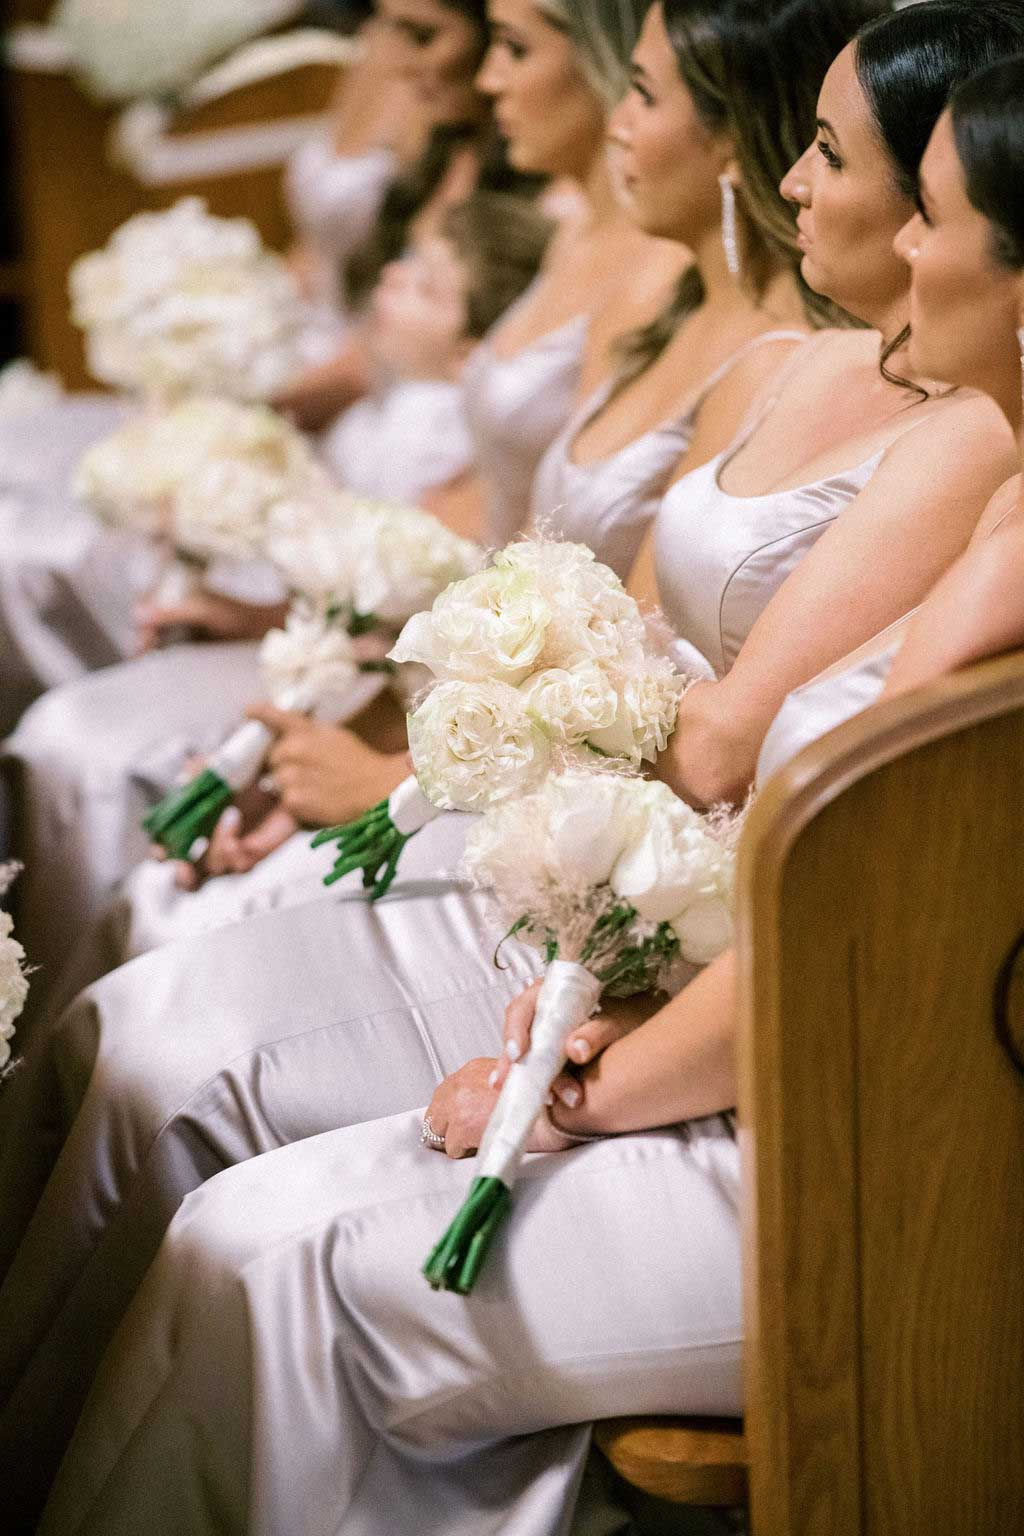 closeup of bridesmaids sitting at the pew holding their bouquets.